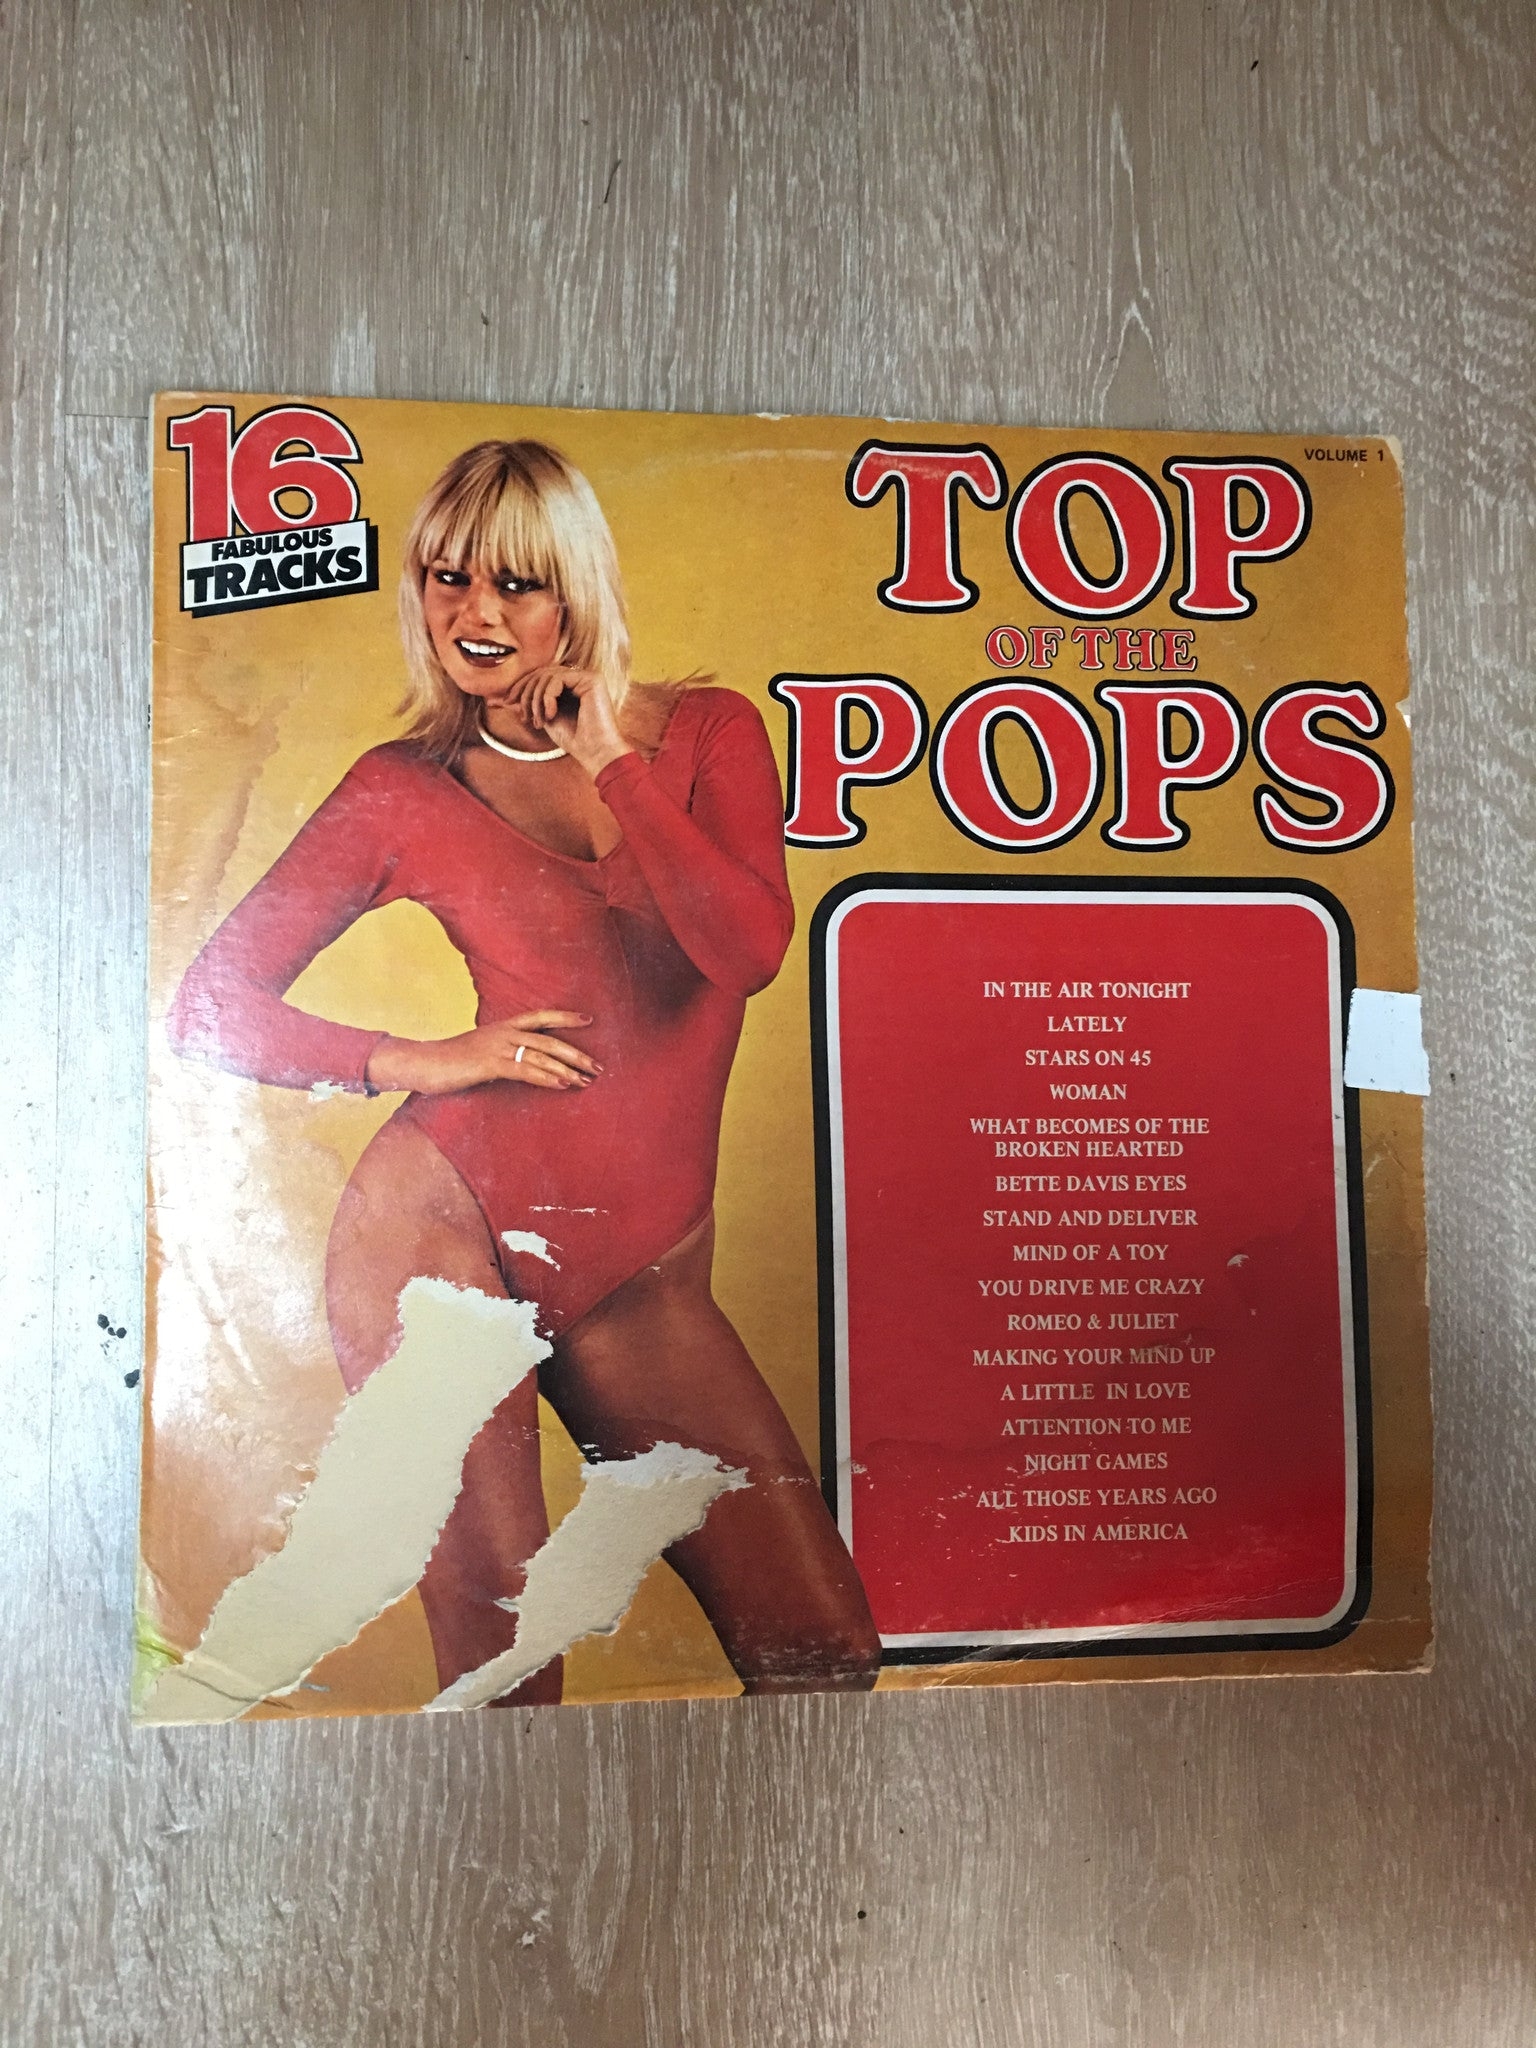 Top of the Pops - Vol. 1 - Vinyl LP - Opened - Very-Good Quality (VG)